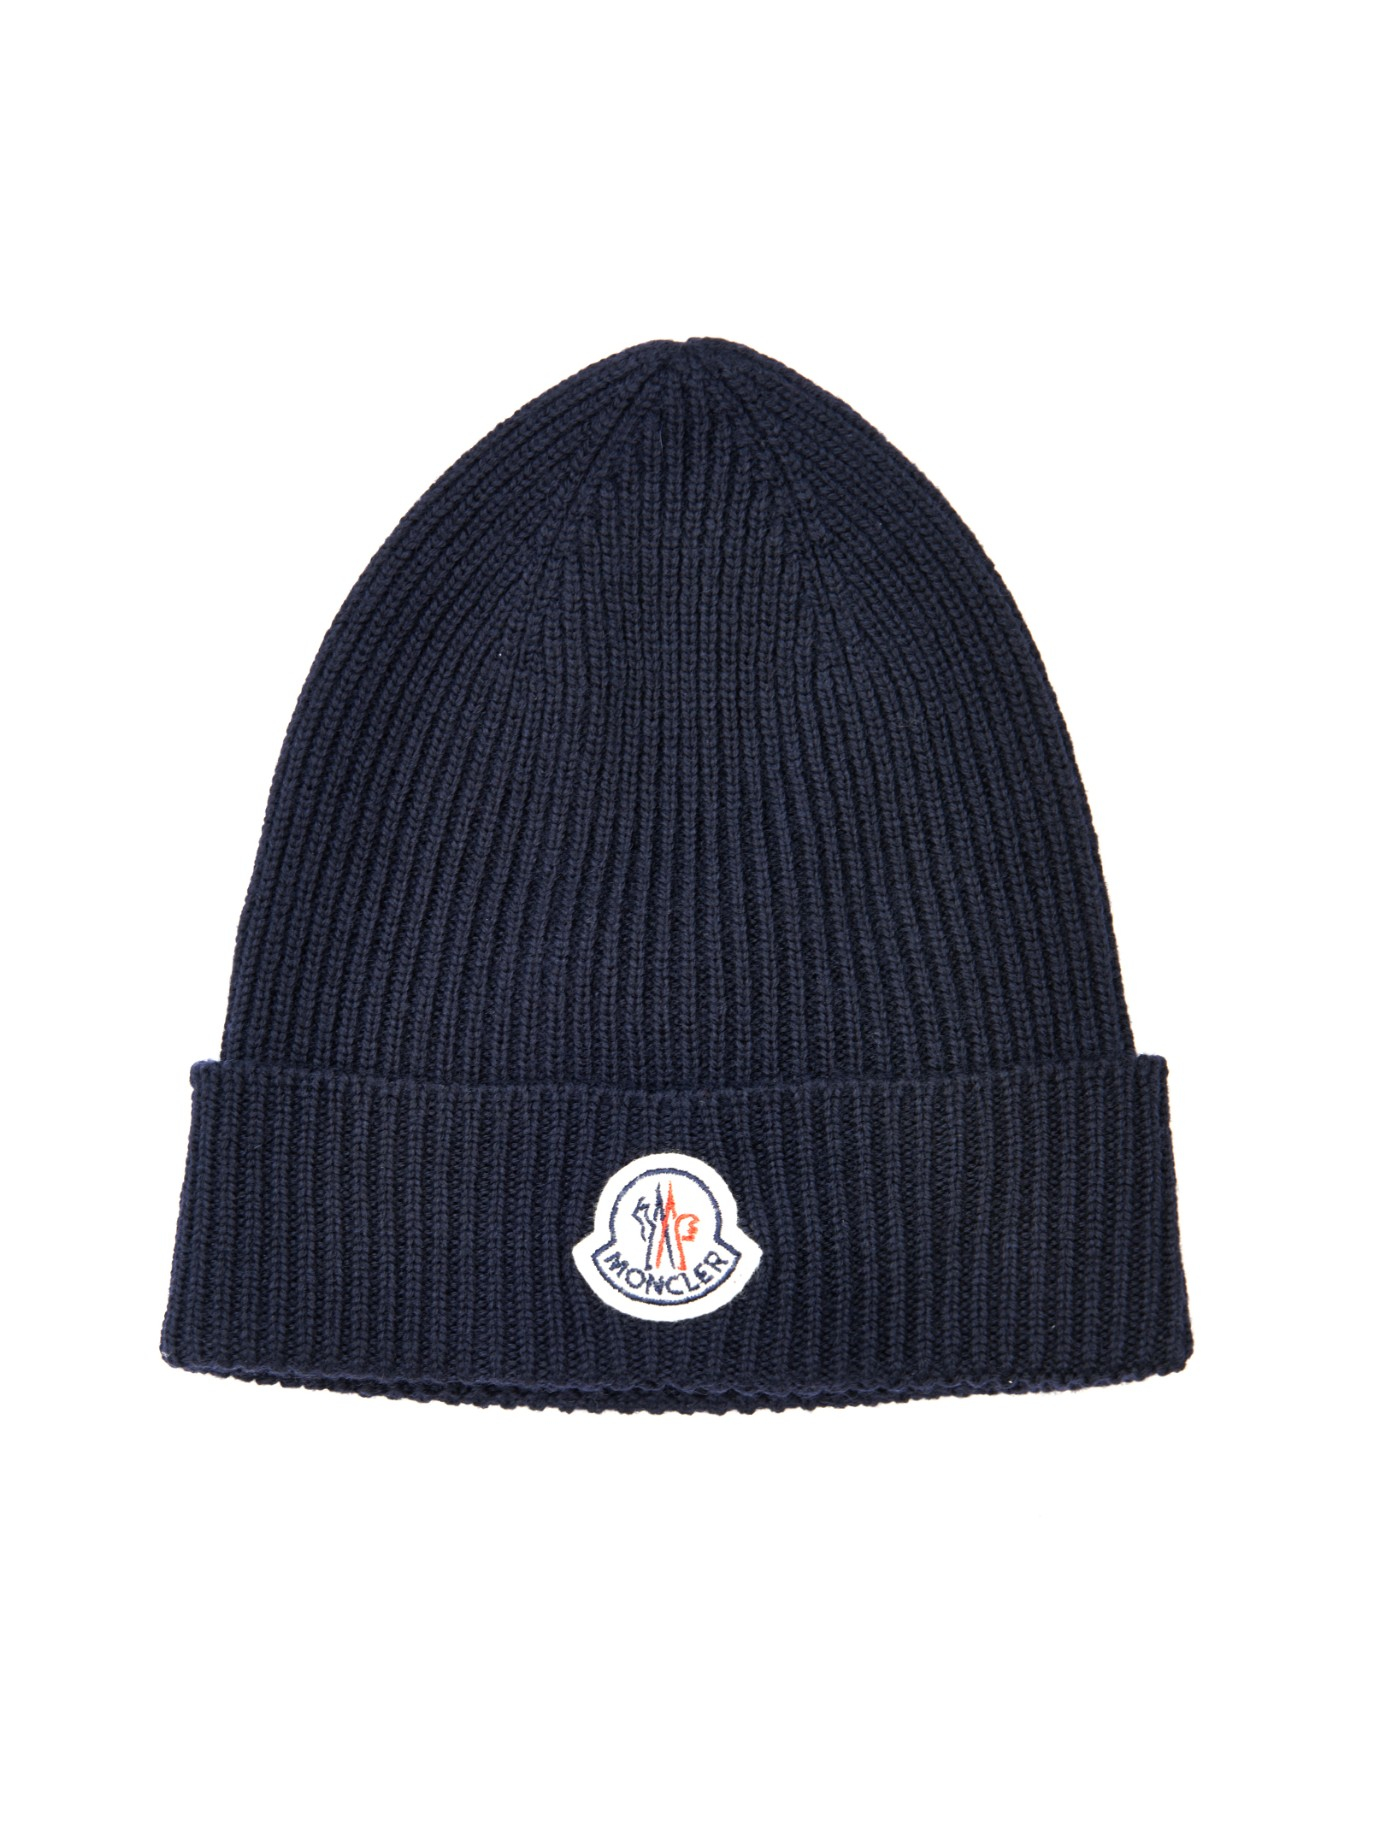 74922d3f2 Moncler Blue Ribbed-Knit Wool Beanie Hat for men